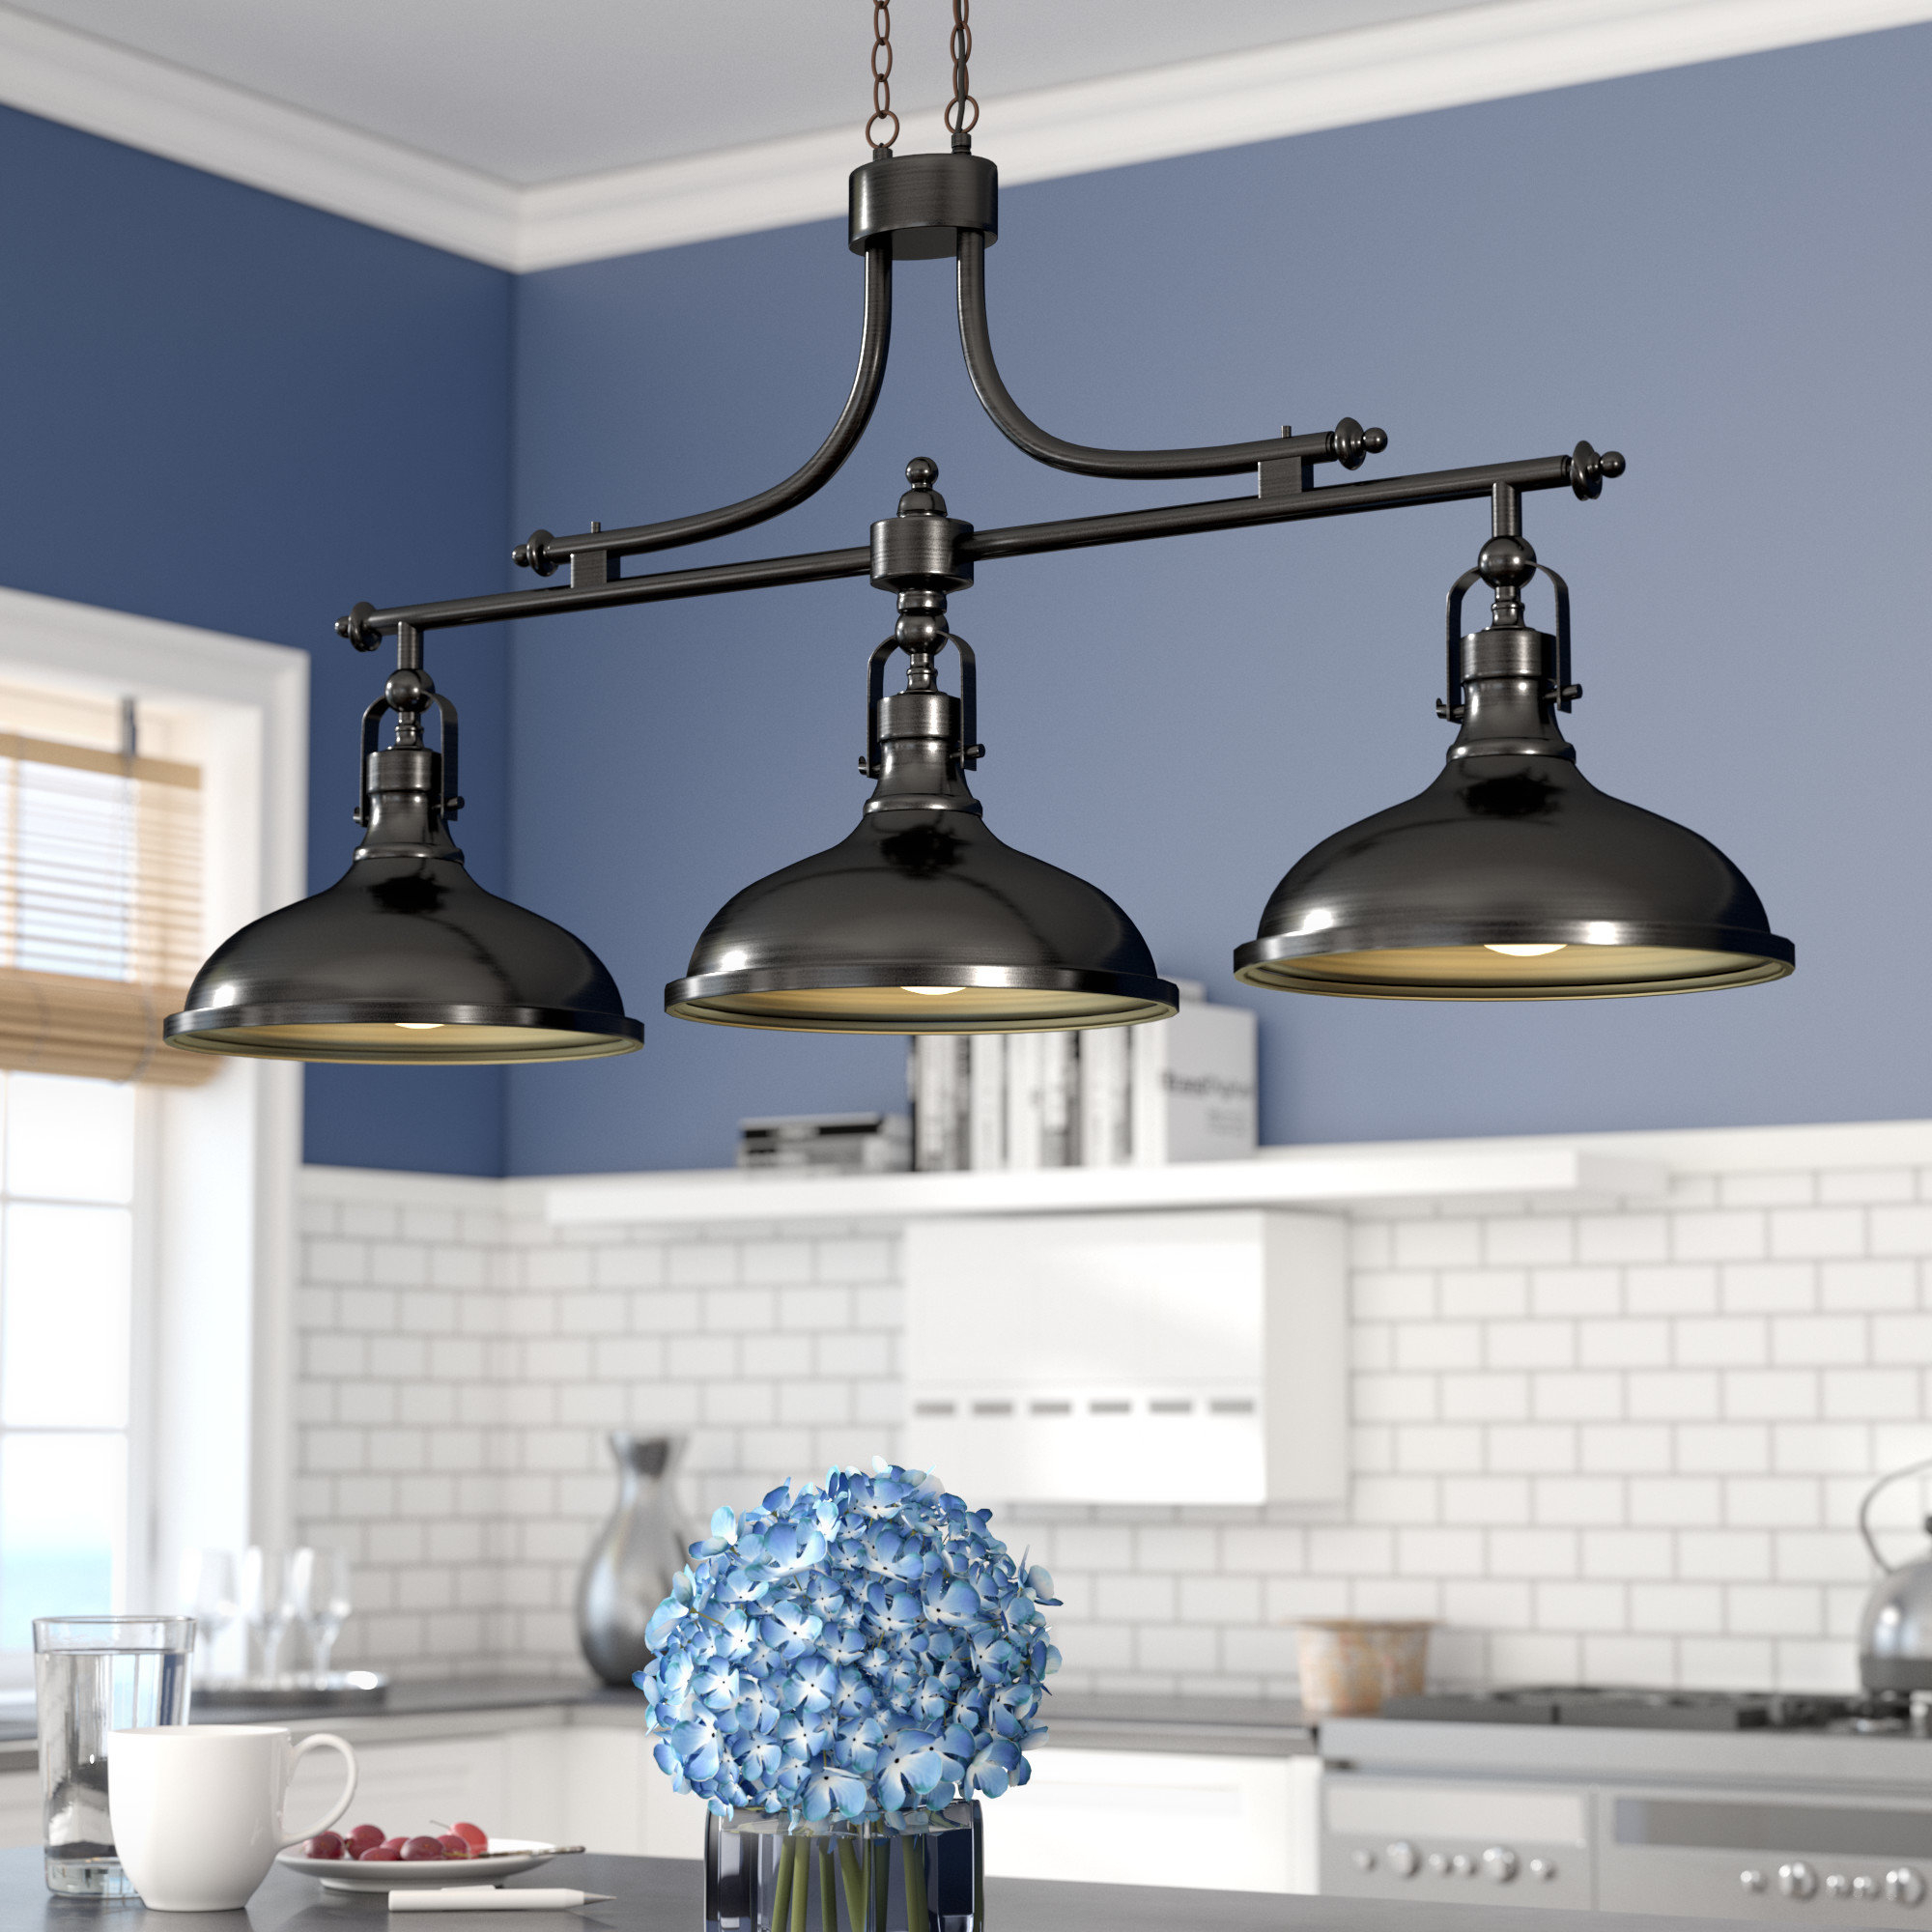 Kitchen Island Pendant Lighting Fixtures – Gnubies Intended For Ariel 3 Light Kitchen Island Dome Pendants (Image 22 of 30)